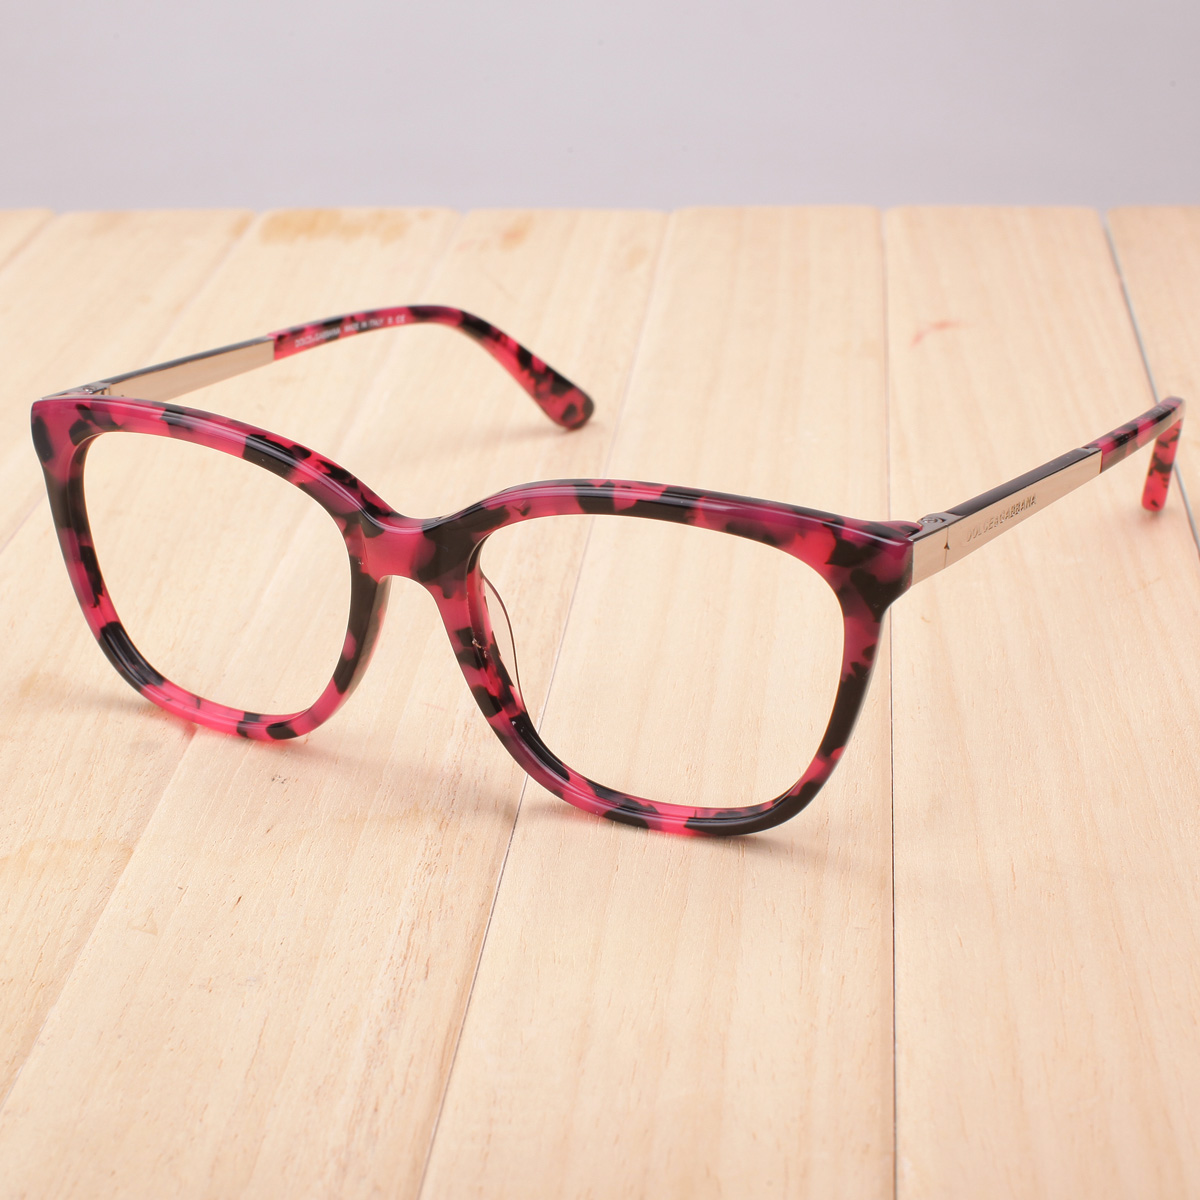 New 2014 Fashion optical eyeglasses spectacle frame men ...